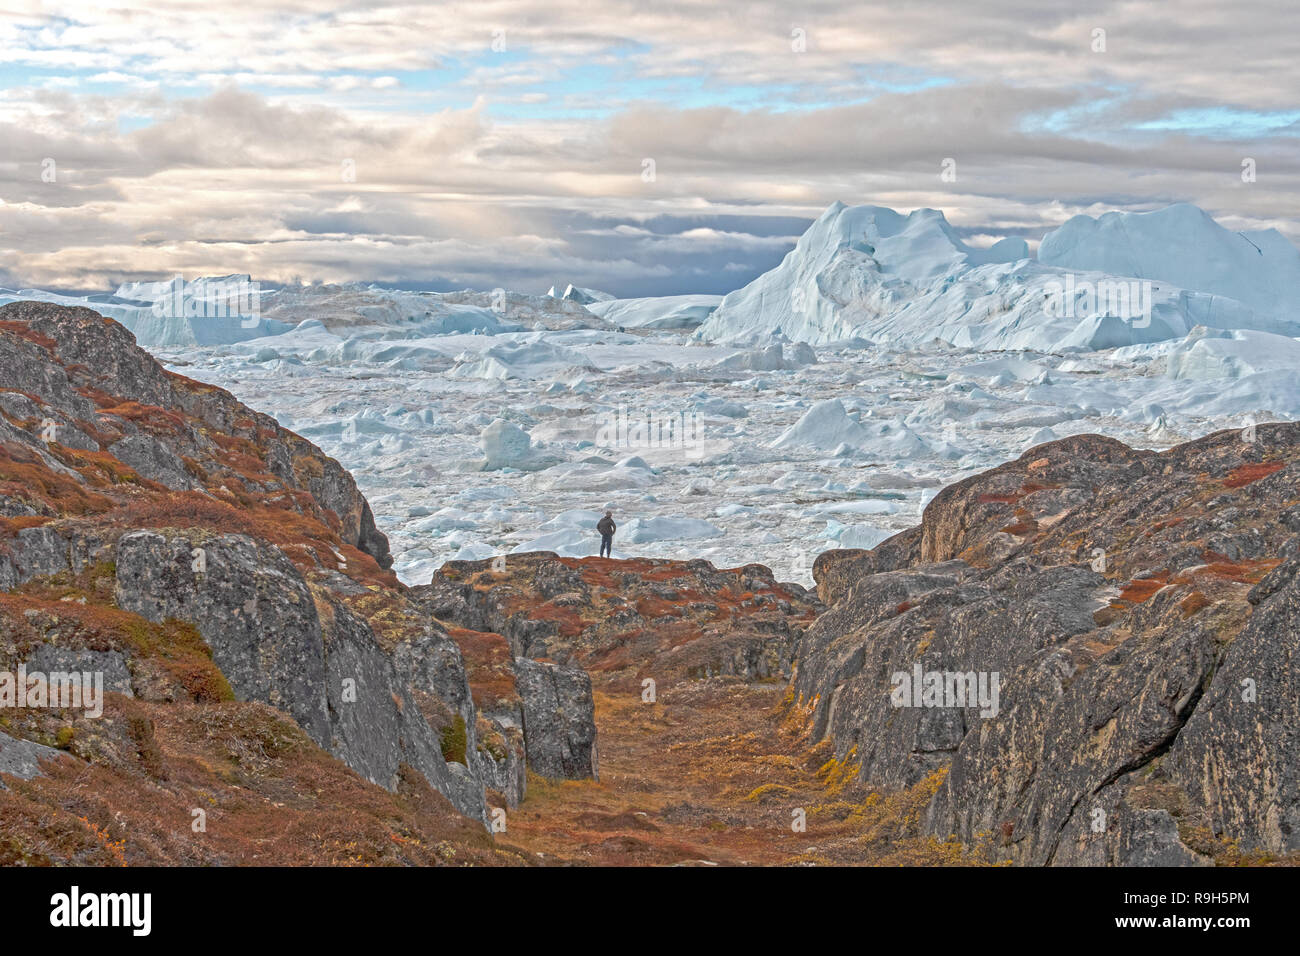 Looking at the Icefjord from Barren Rocks along the Icefjord of Ilulissat, Greenland - Stock Image